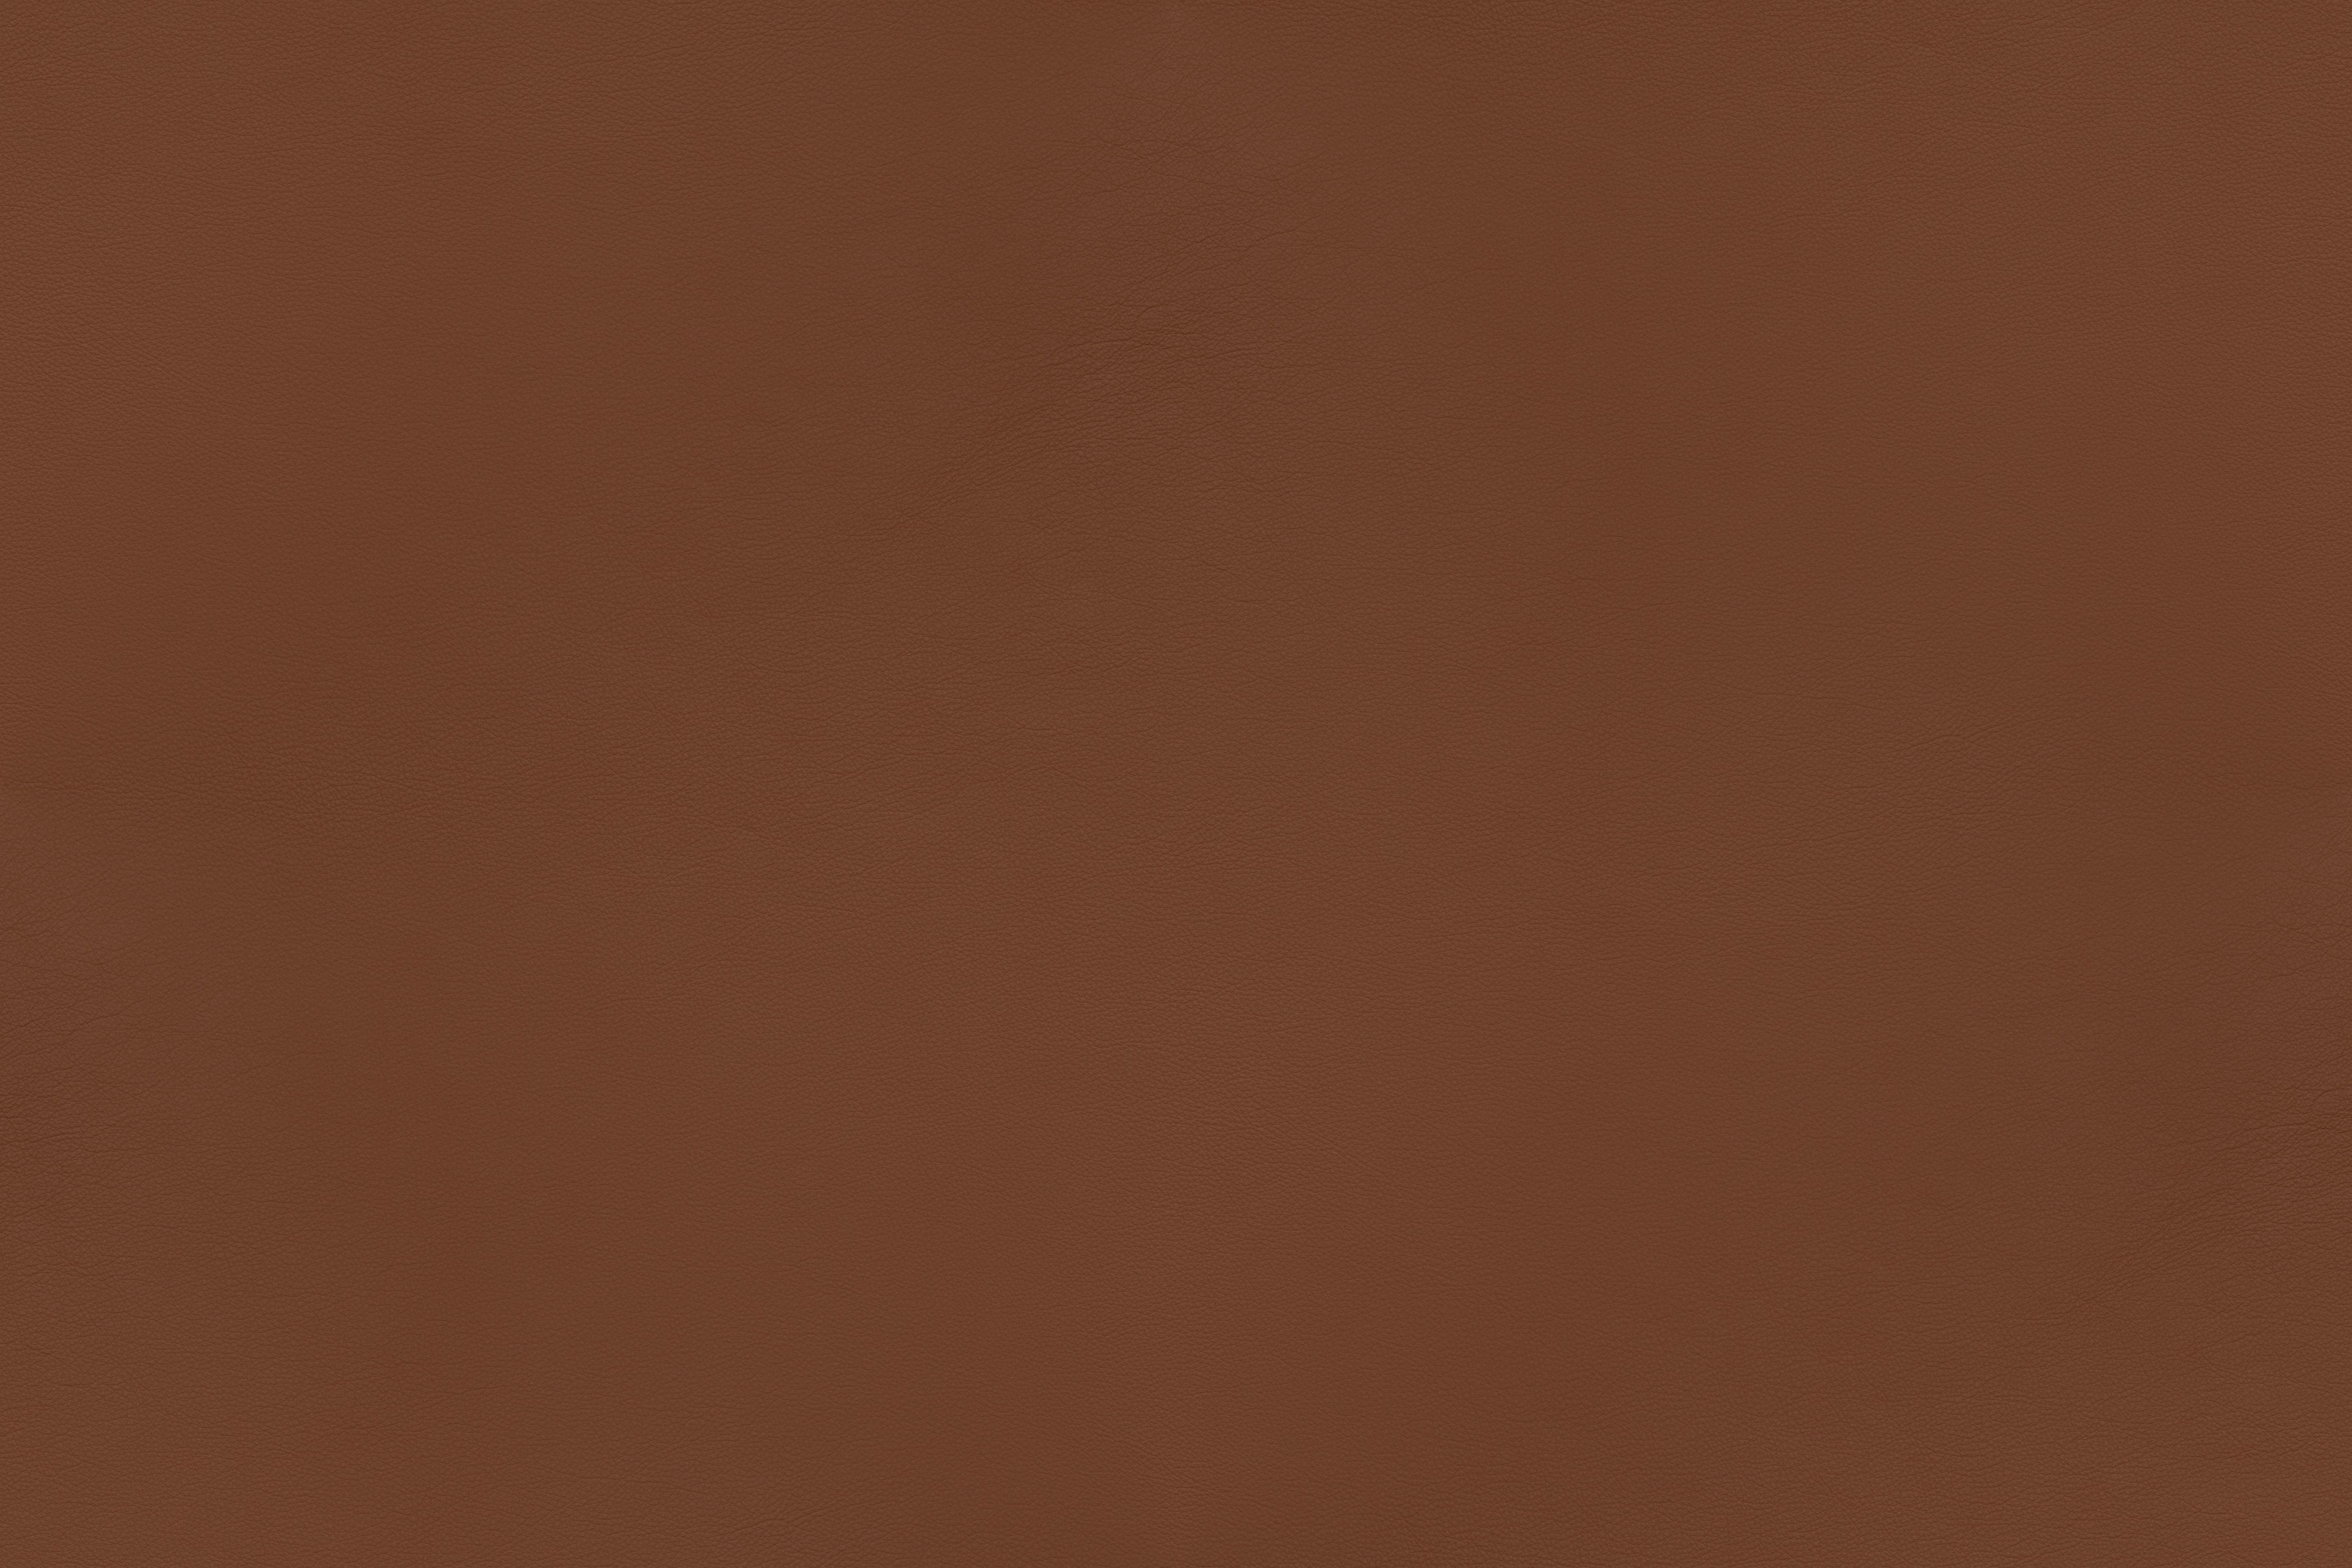 Dino Hristopoulos: Brown High Quality Wallpaper #737811